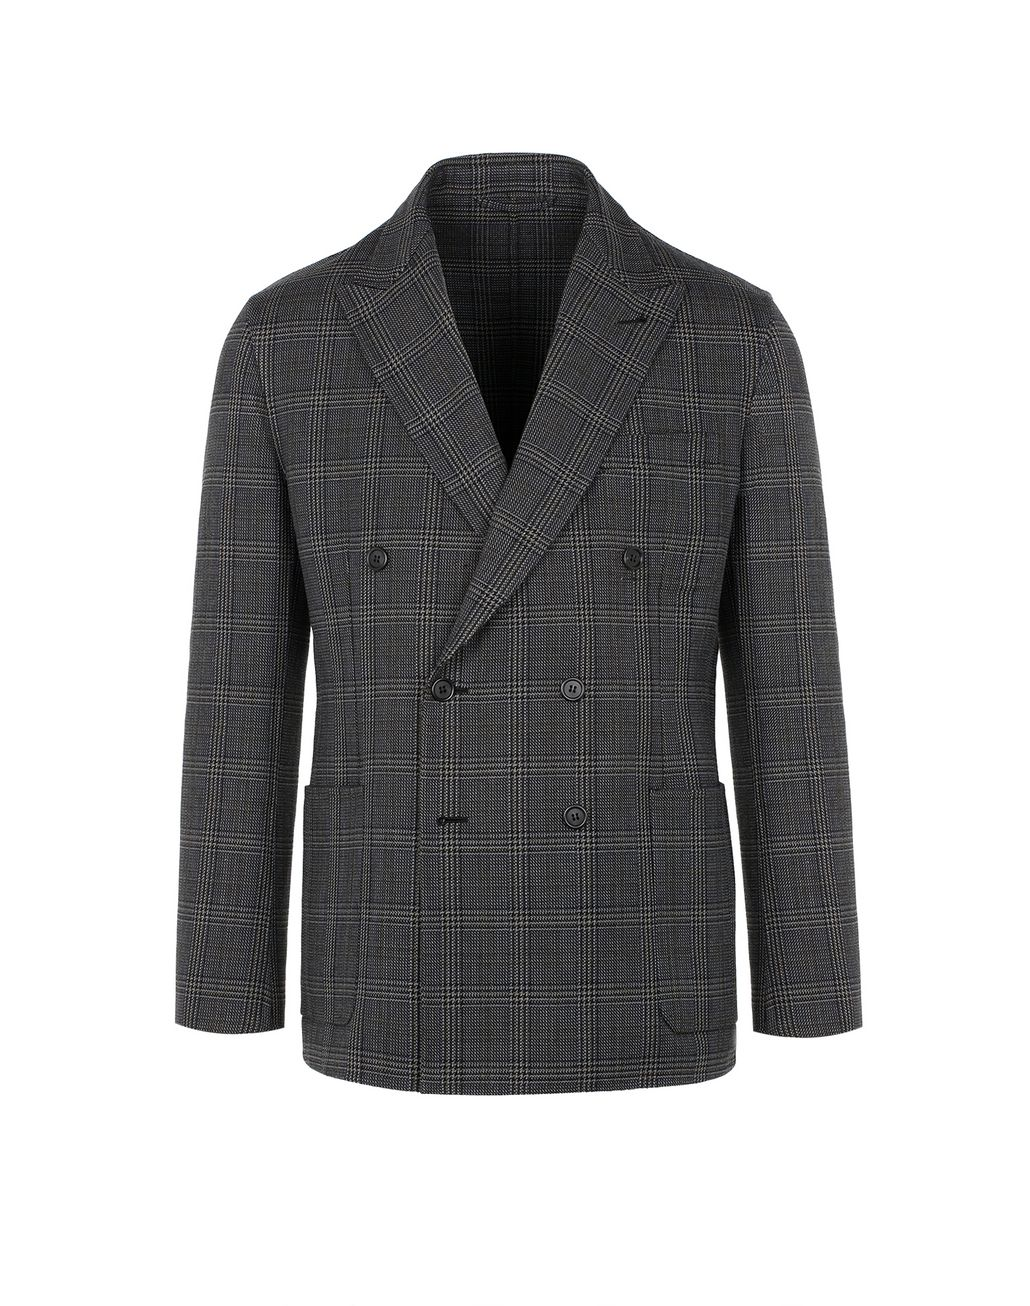 BRIONI Gray Double-Breasted Jacket Suits & Jackets Man f